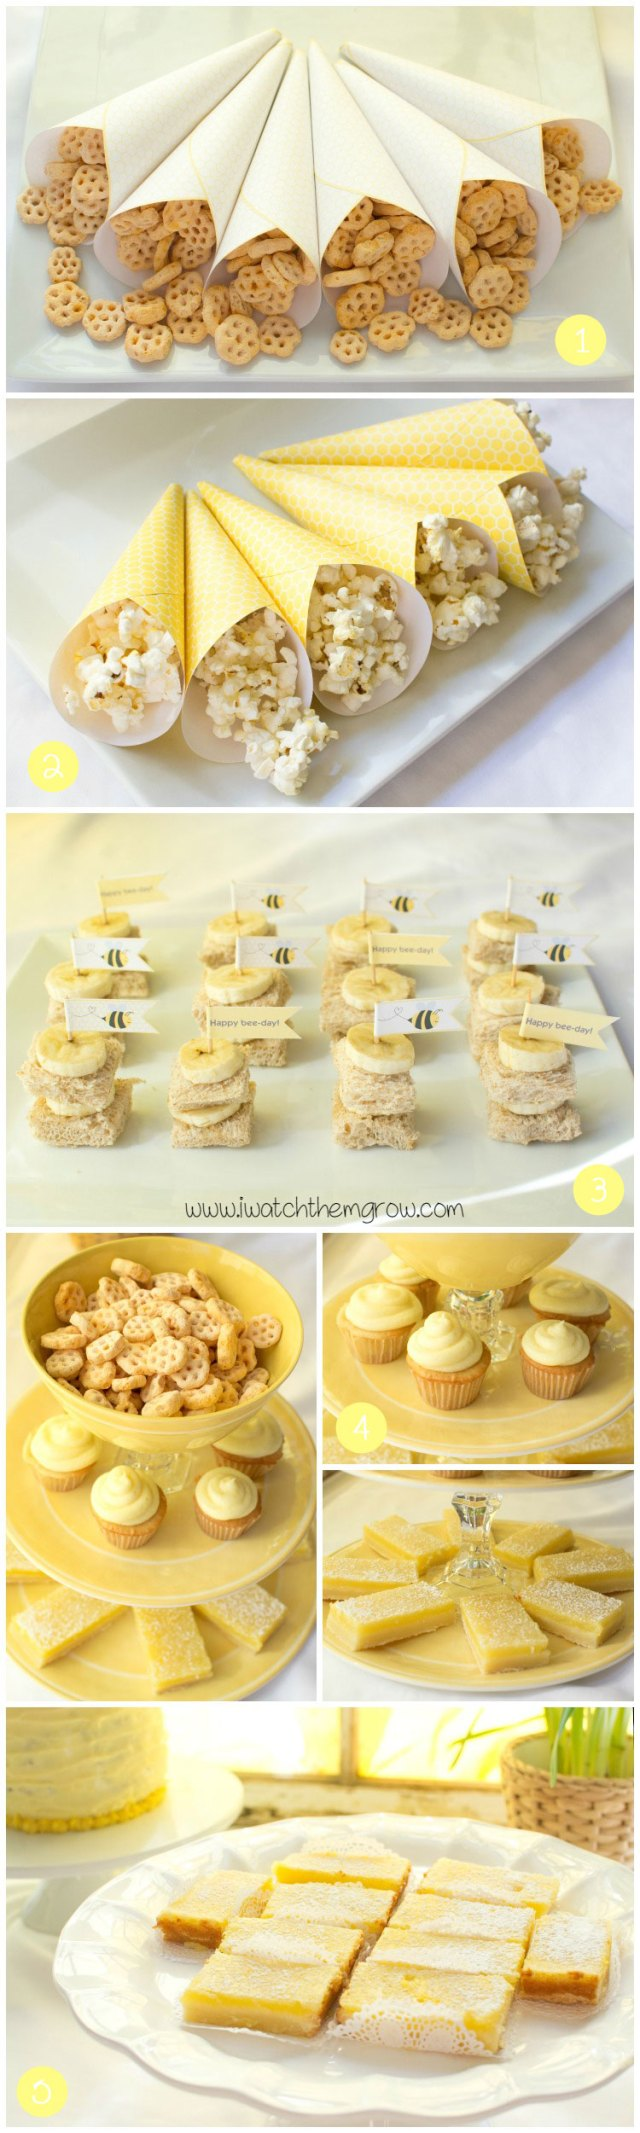 Sweet honey bee party food ideas!